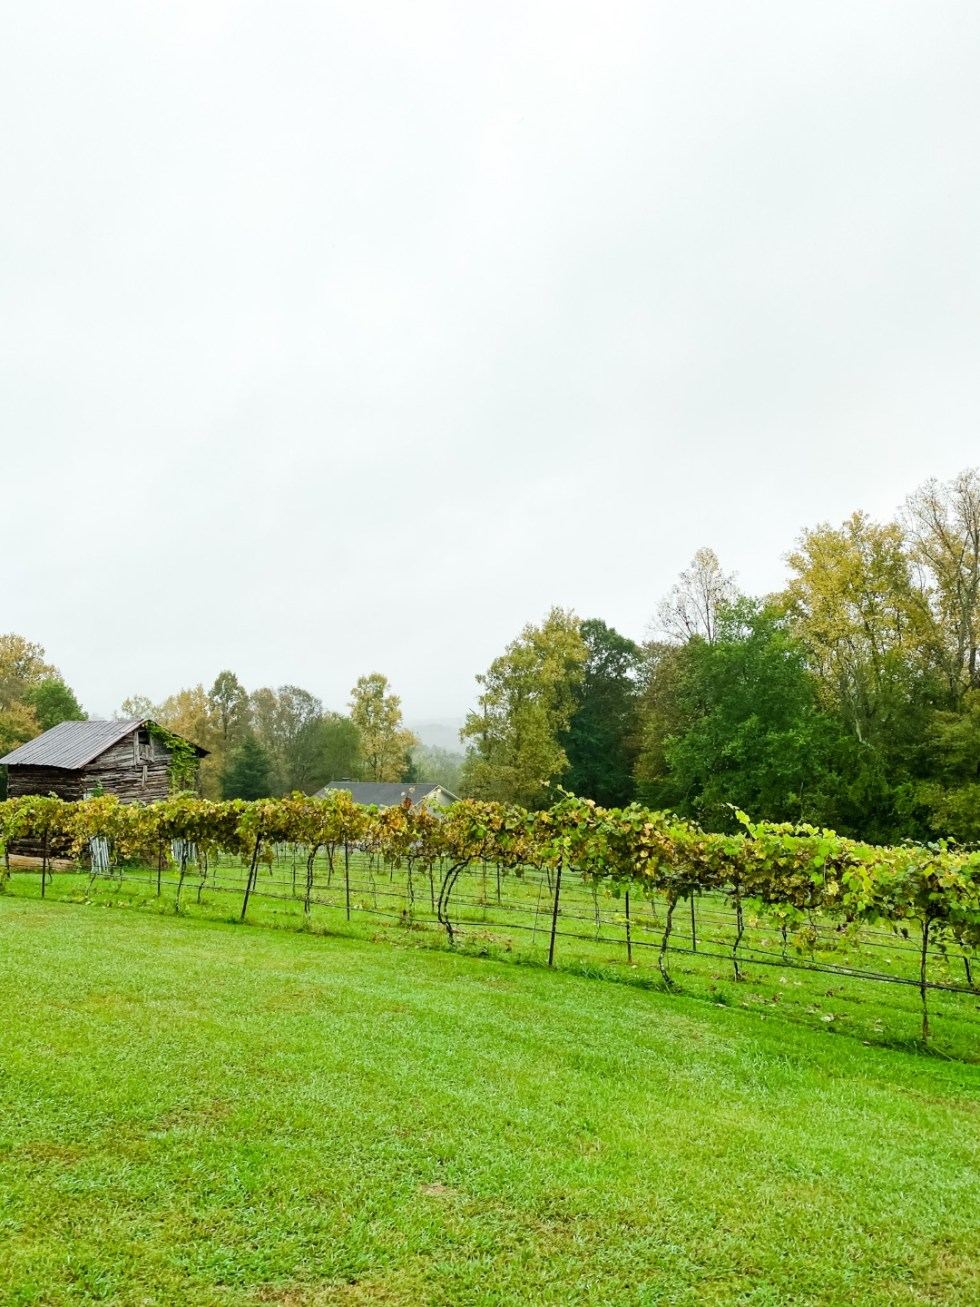 Western NC Wineries: 6 Wineries to Visit During your Next Girls' Weekend - I'm Fixin' To - @mbg0112 |Western NC Wineries by popular NC blog, I'm Fixin' To: image of Carolina Heritage Vineyard and Winery.